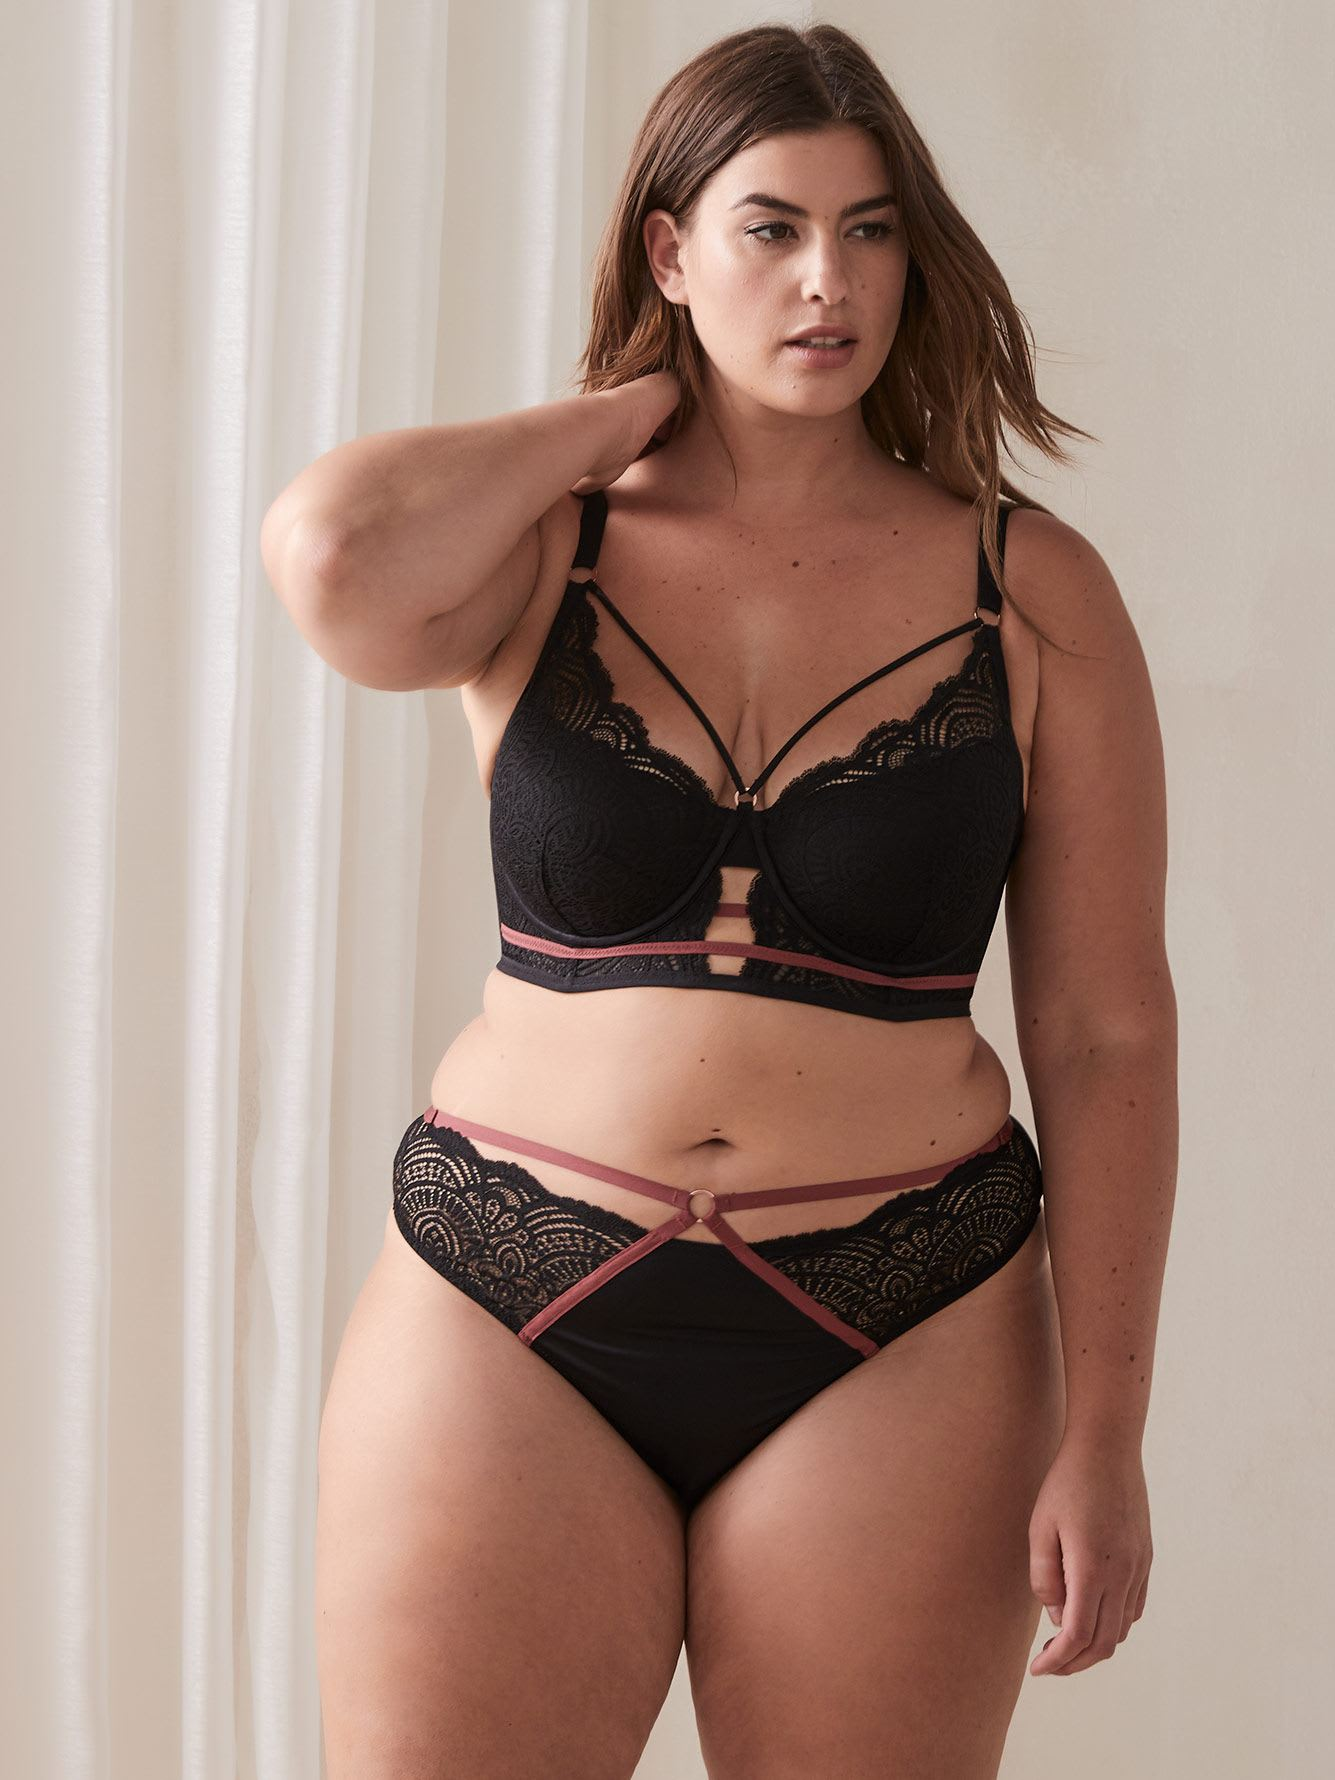 Ashley Graham - Long Line Diva Demi Cup Bra, G & H Cups